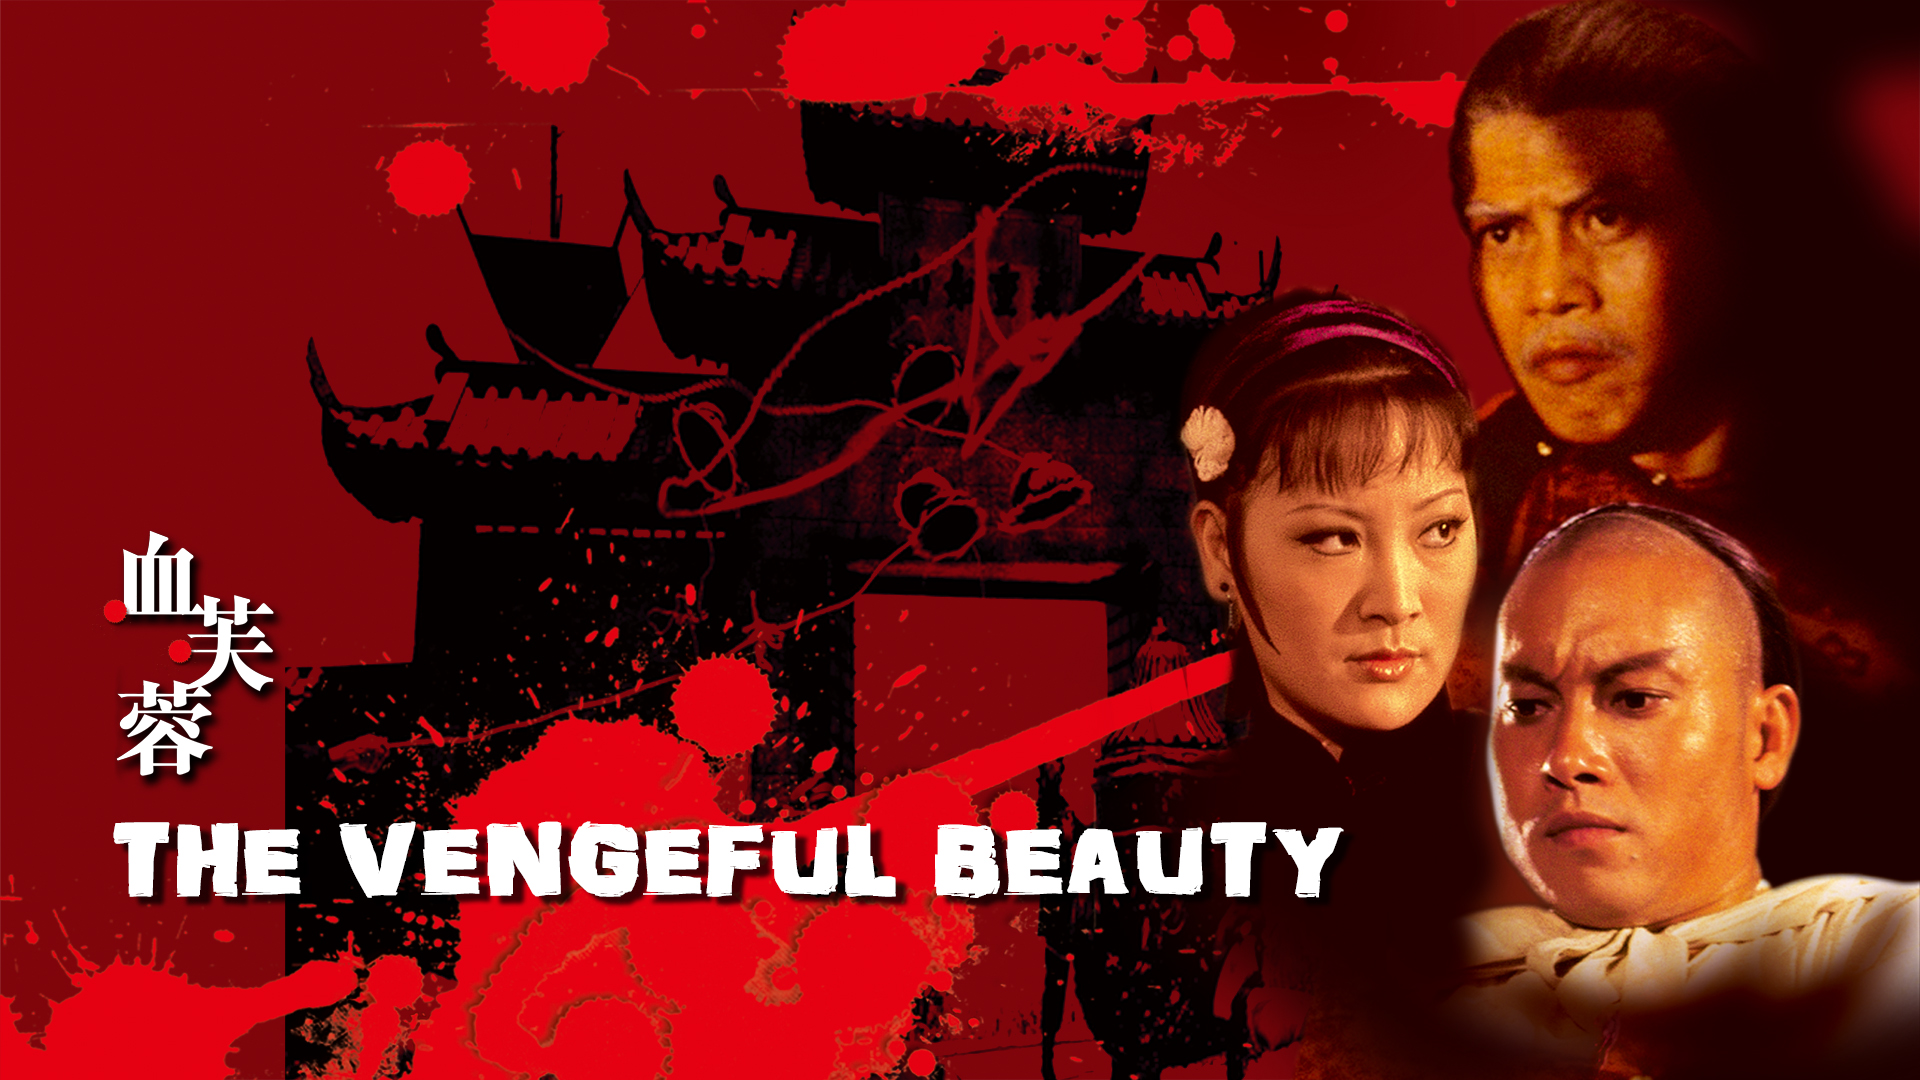 The Vengeful Beauty